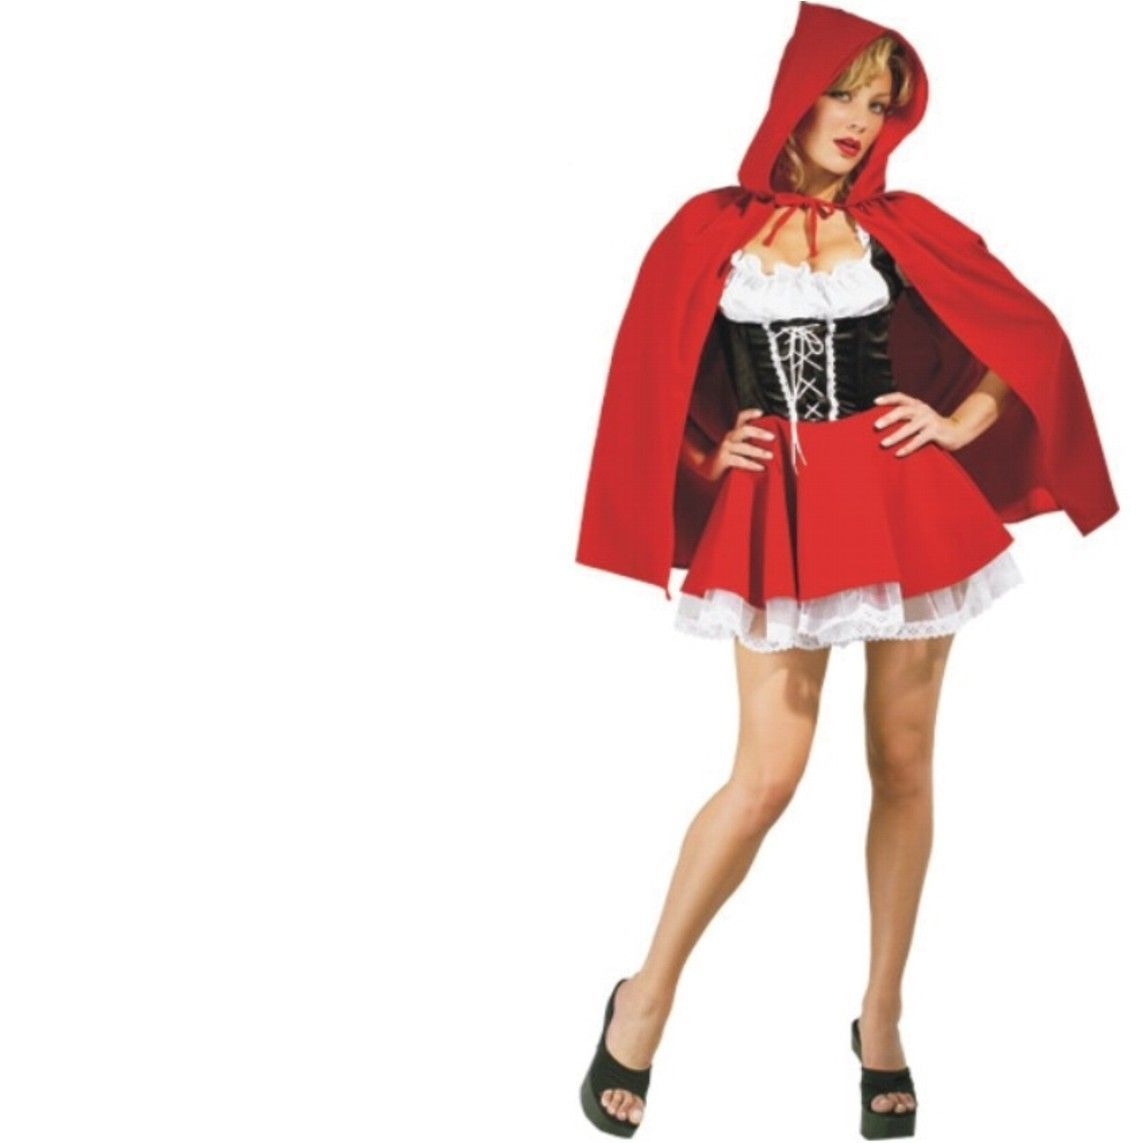 Costume - Adult Secret Wishes - Little Red Riding Hood - Extra Small - Sexy XS